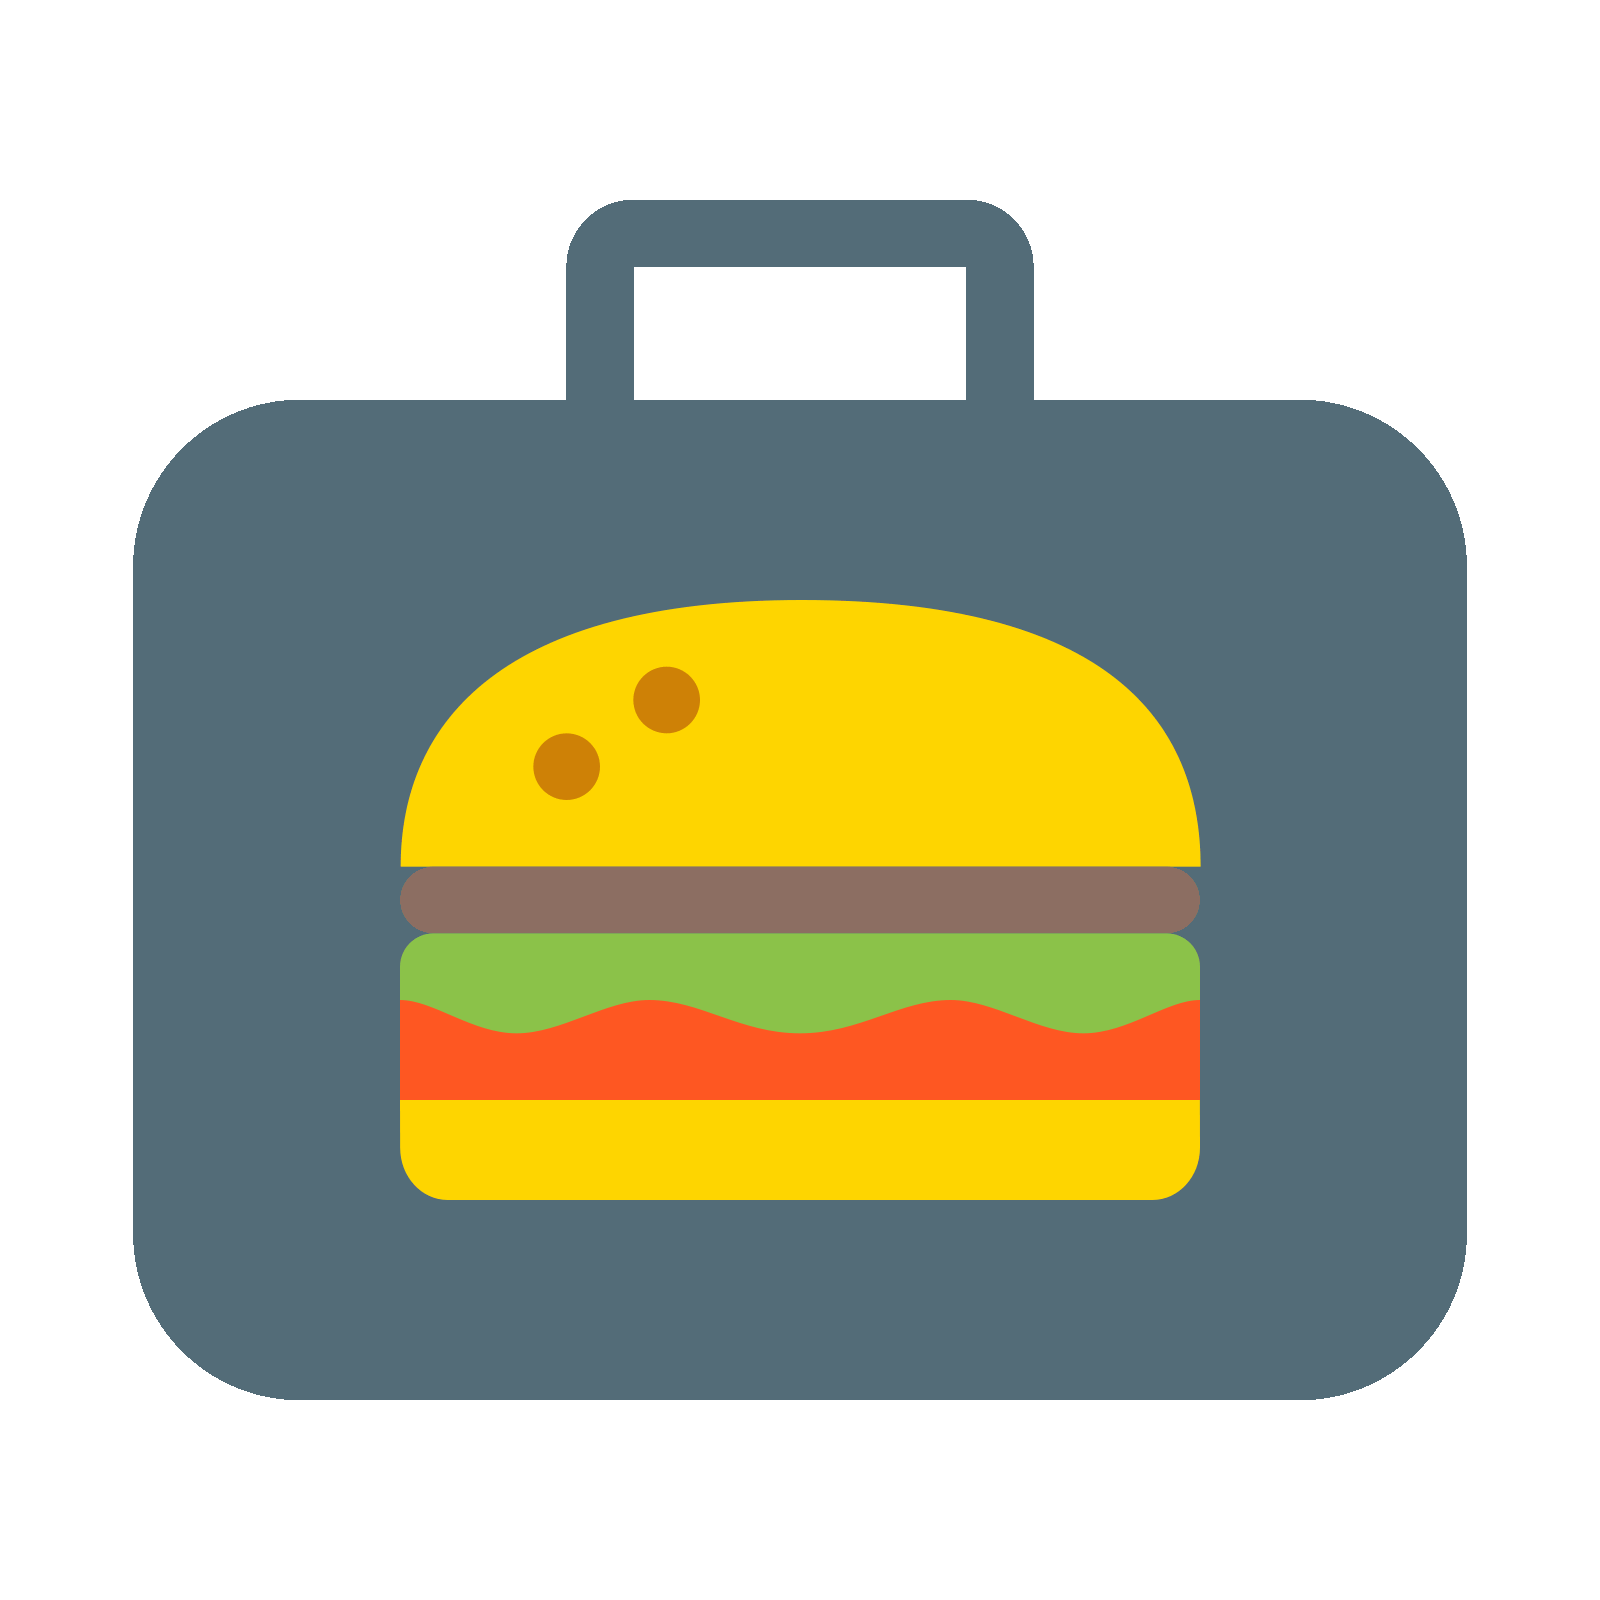 Lunch box png. Lunchbox icon free download